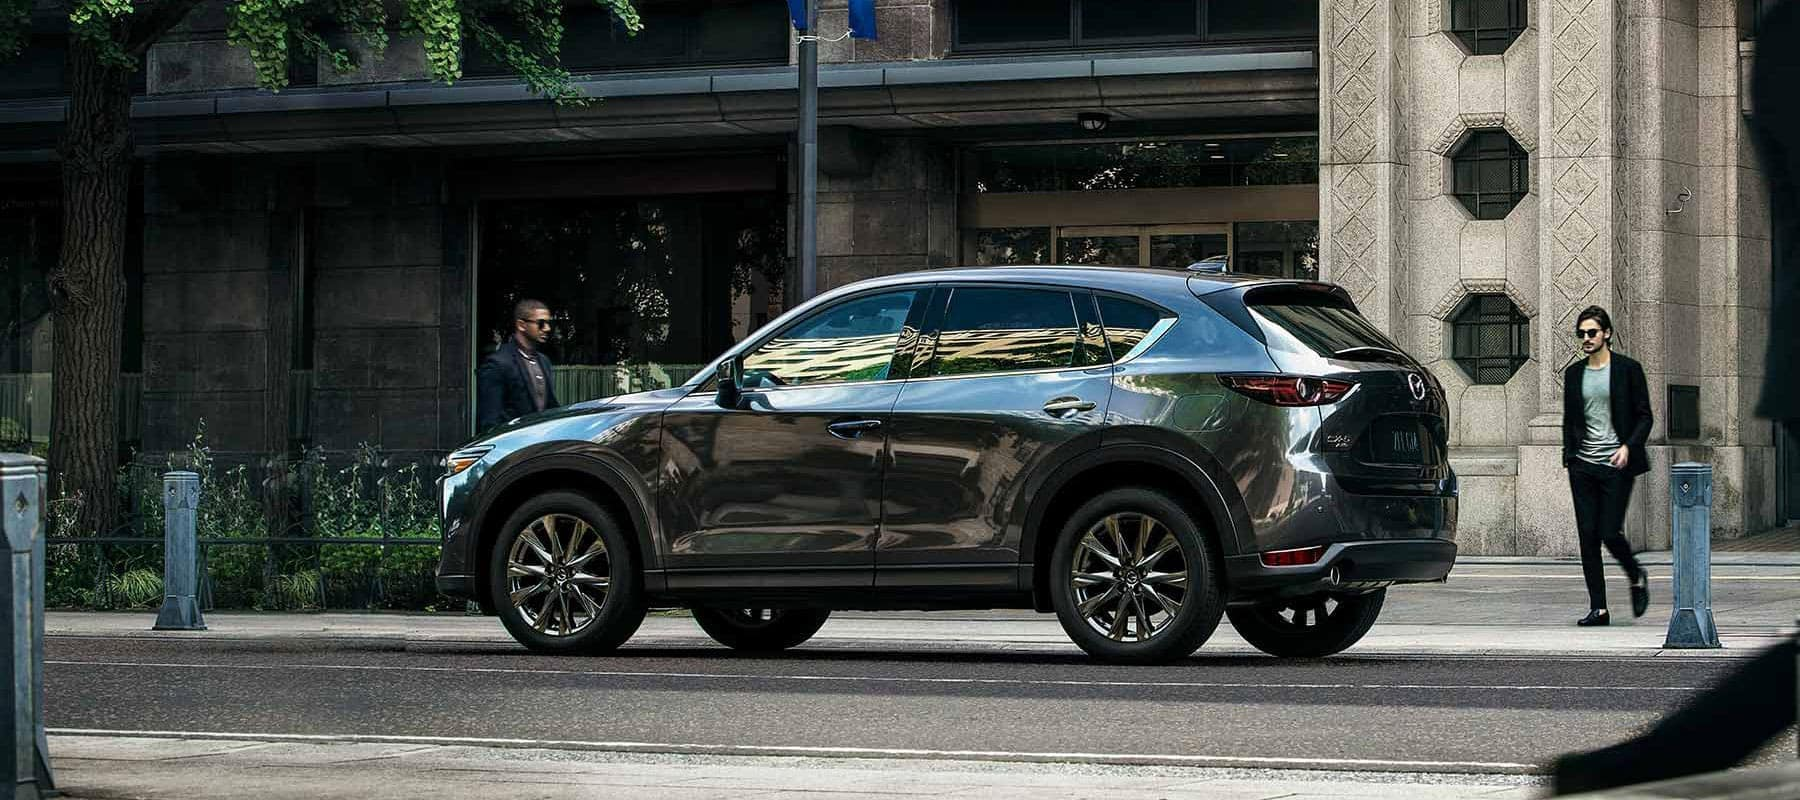 Mazda CX-5 parked on the side of the road in a city